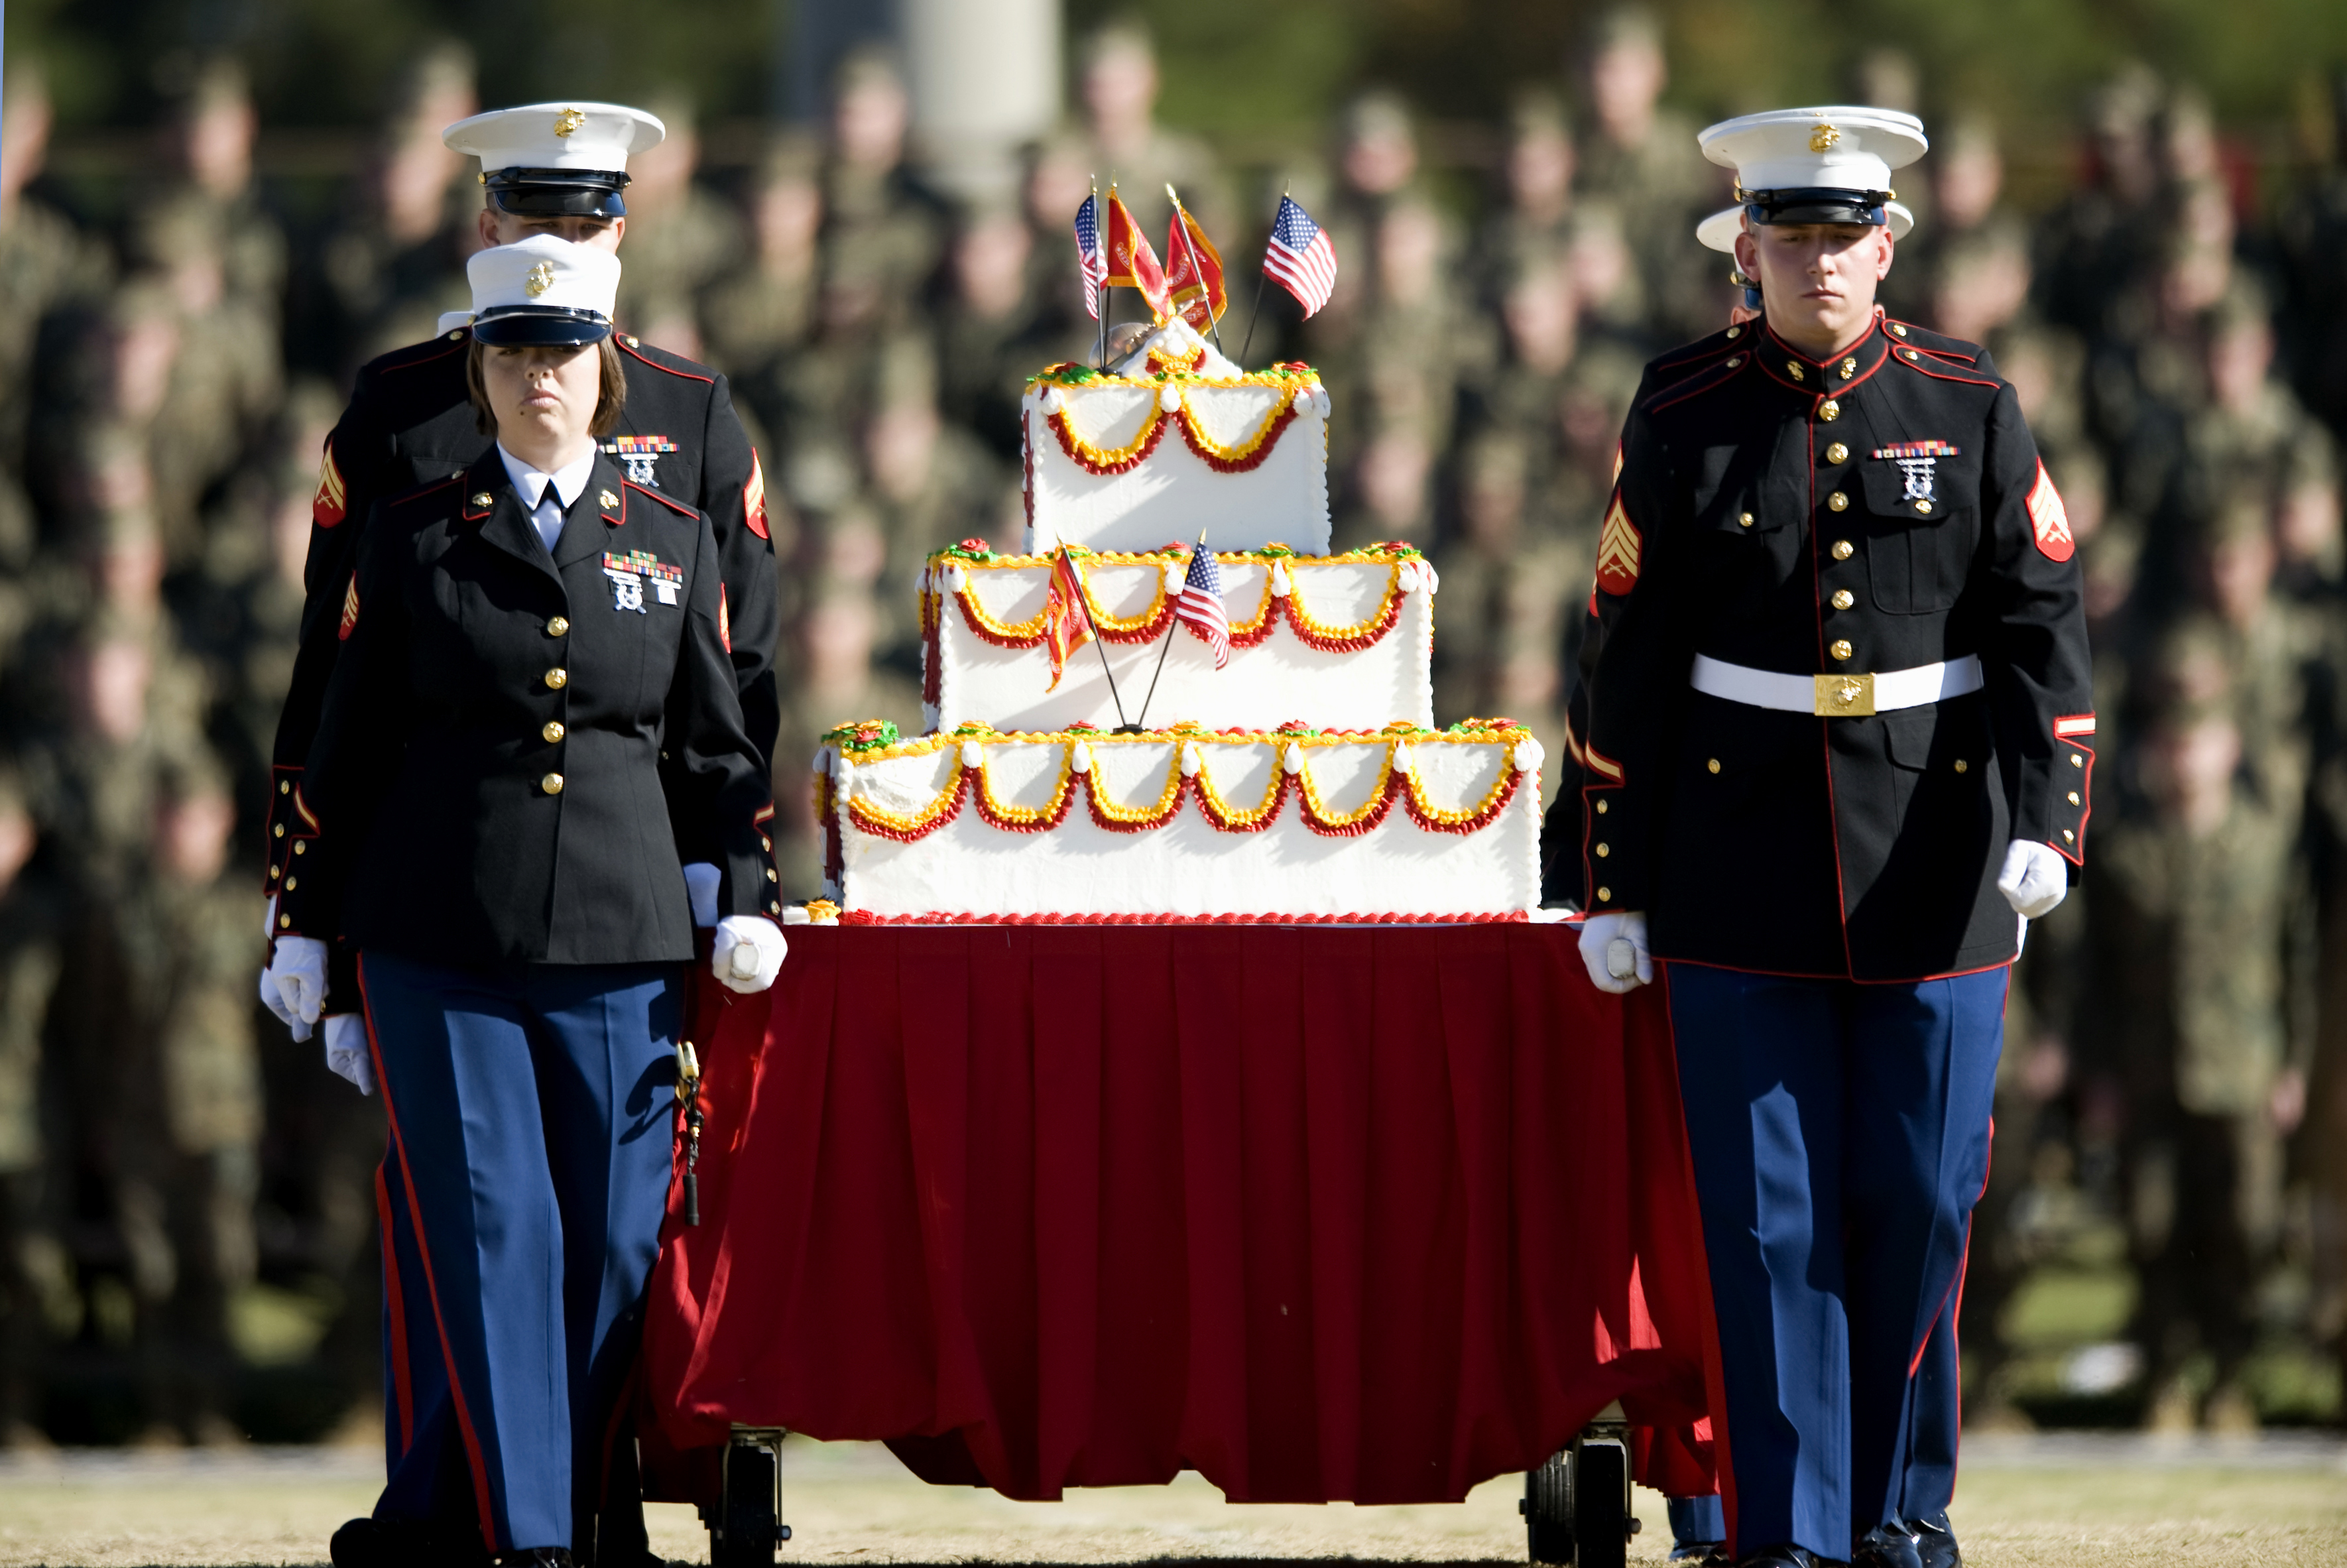 marine corp The nrotc program was established to educate and train qualified young men and women for service as commissioned officers in the navy and marine corps.